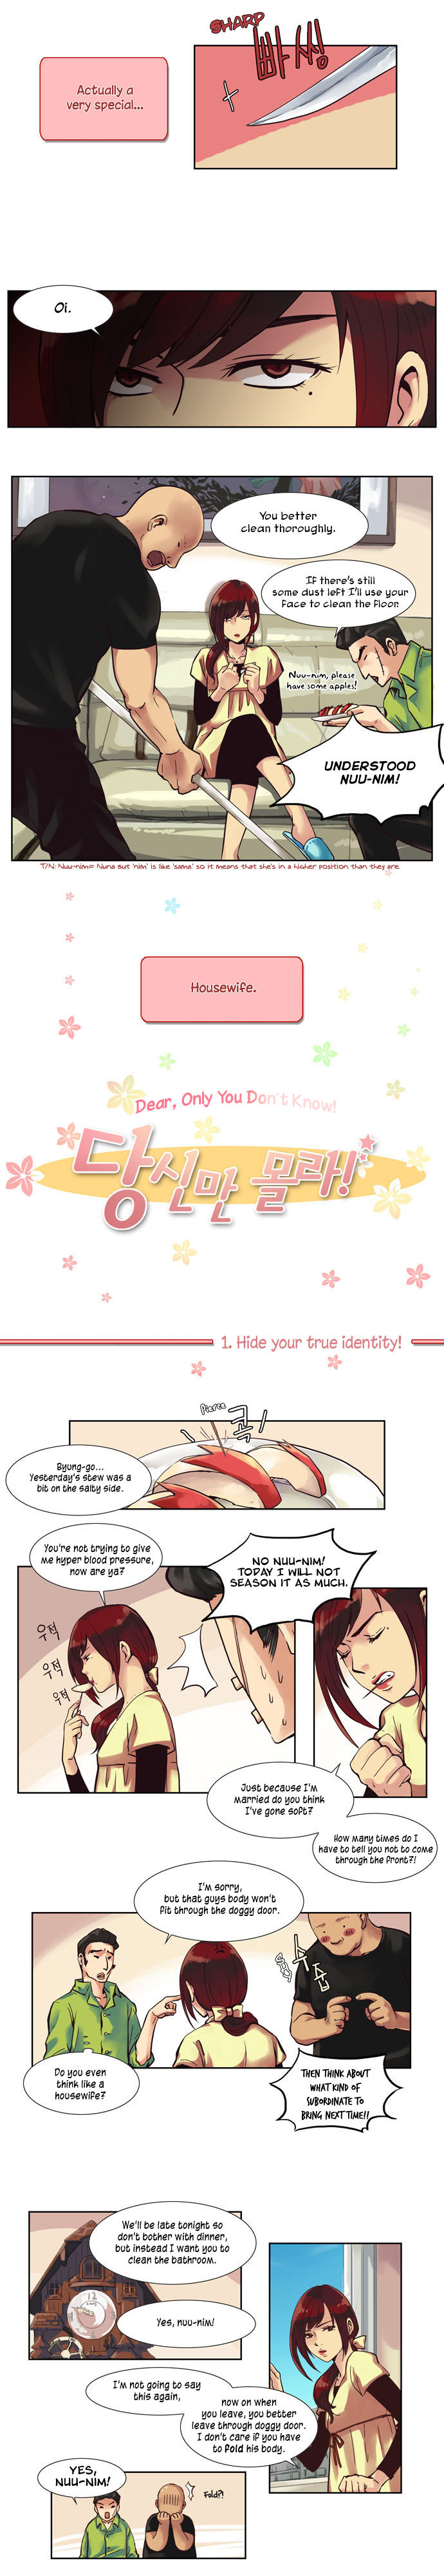 Dear, Only You Don't Know! 1 Page 2